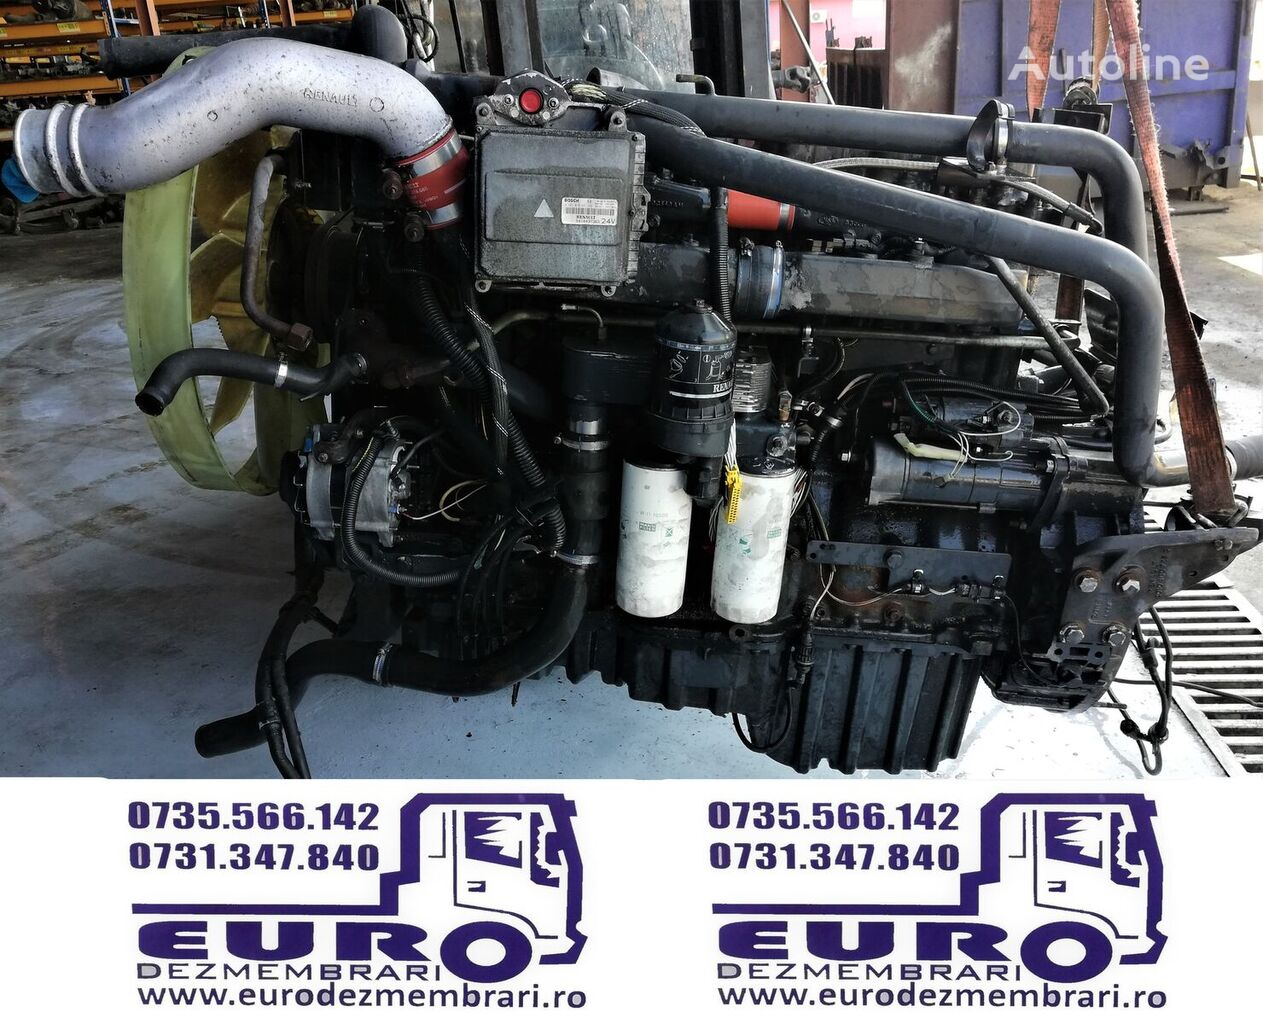 RENAULT MACK 440 - 480 cp engine for tractor unit